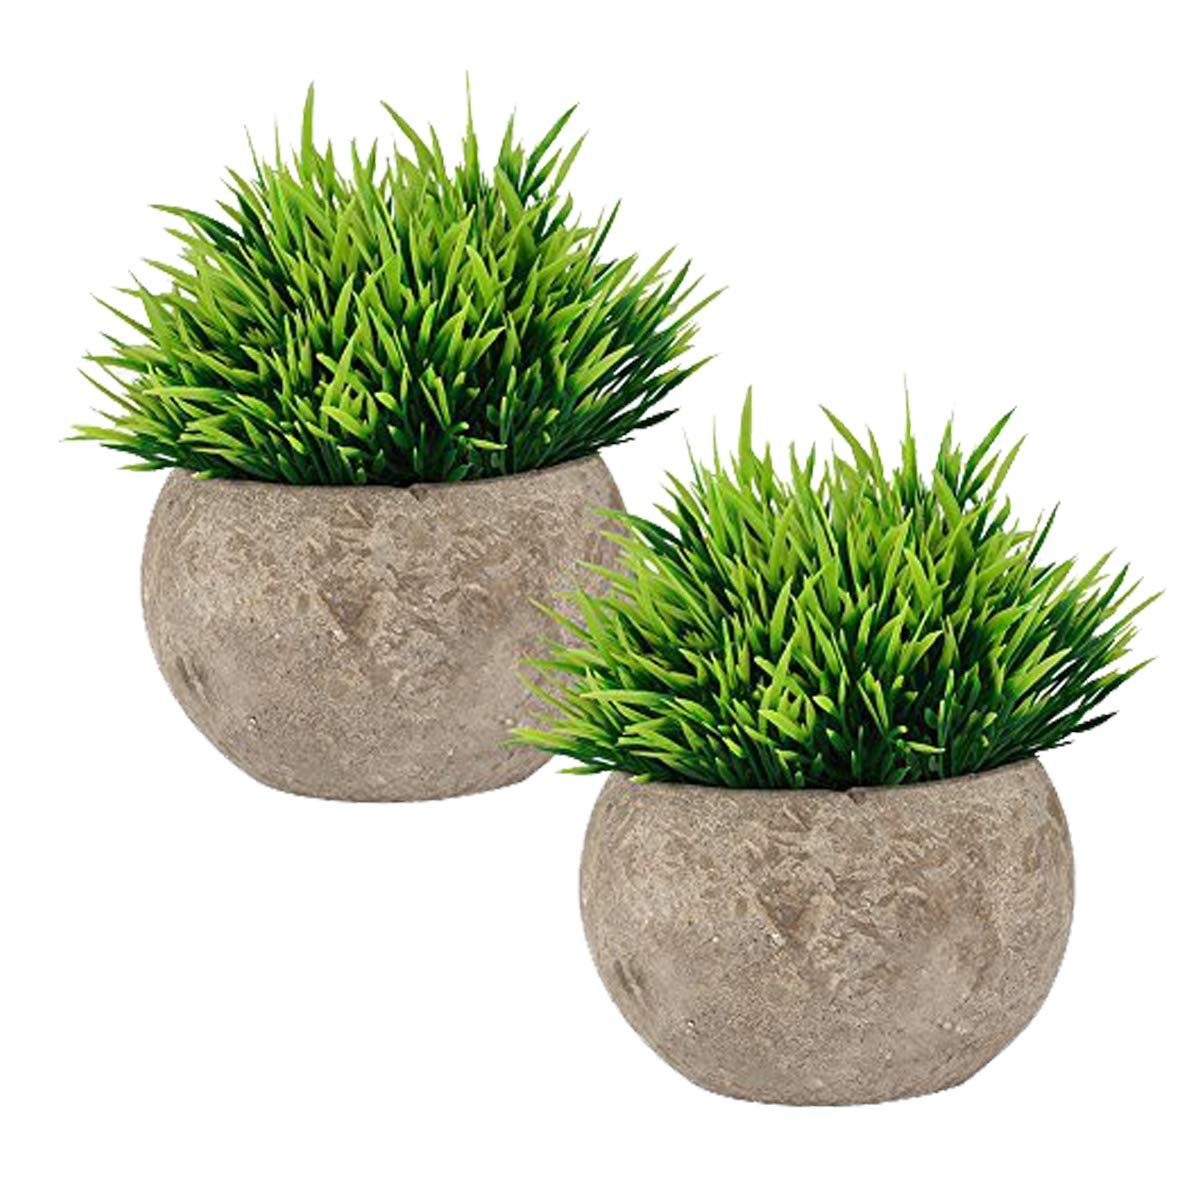 The Bloom Times 2 Pcs Fake Plant for Bathroom/Home Decor, Small Artificial Faux Greenery for House Decorations (Potted Plants Updated Version)